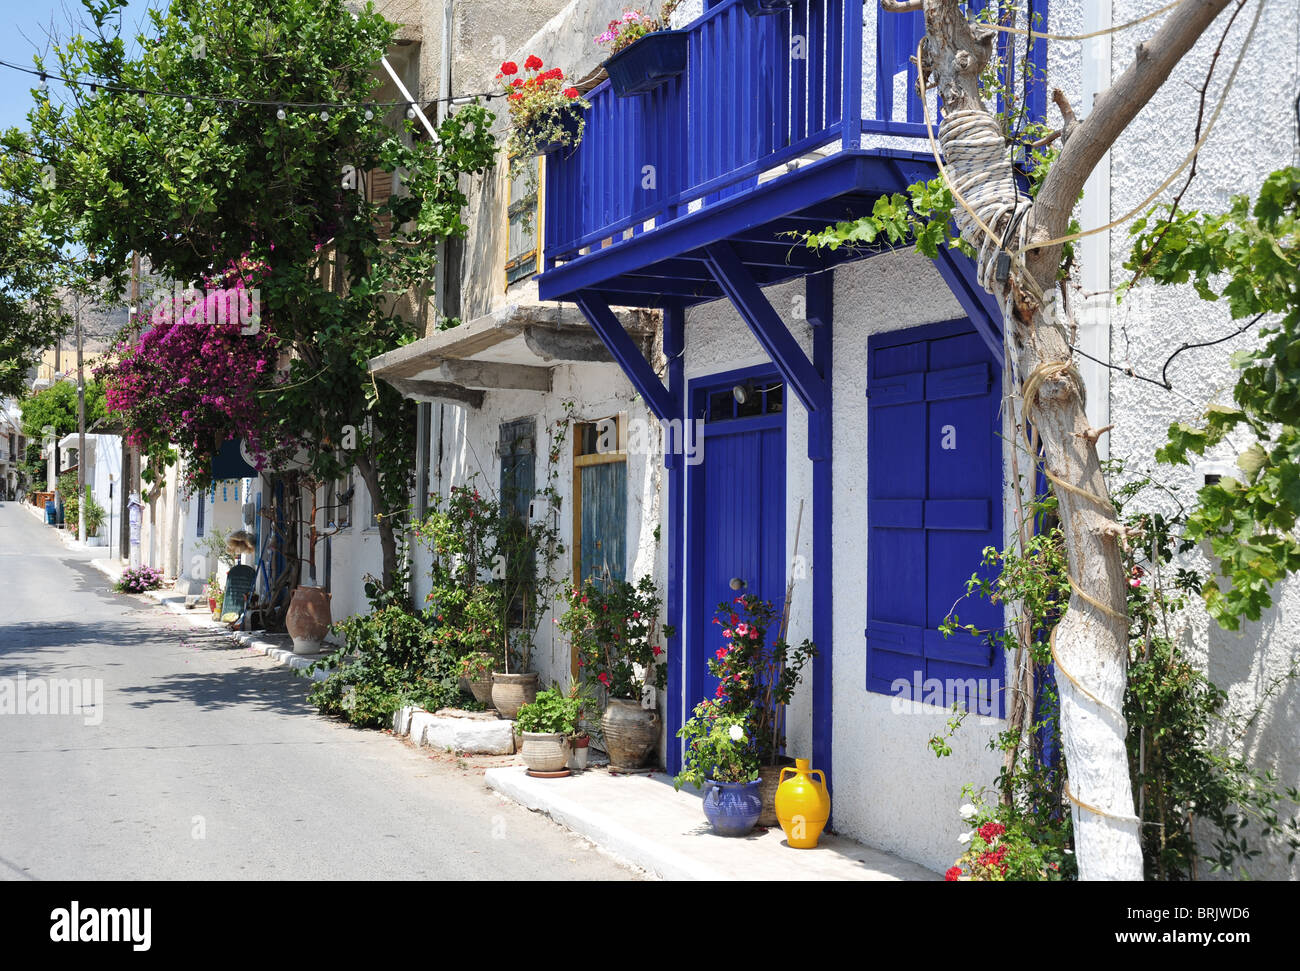 Typical street scene in the small town of Mirtos in southern Crete, Greece - Stock Image